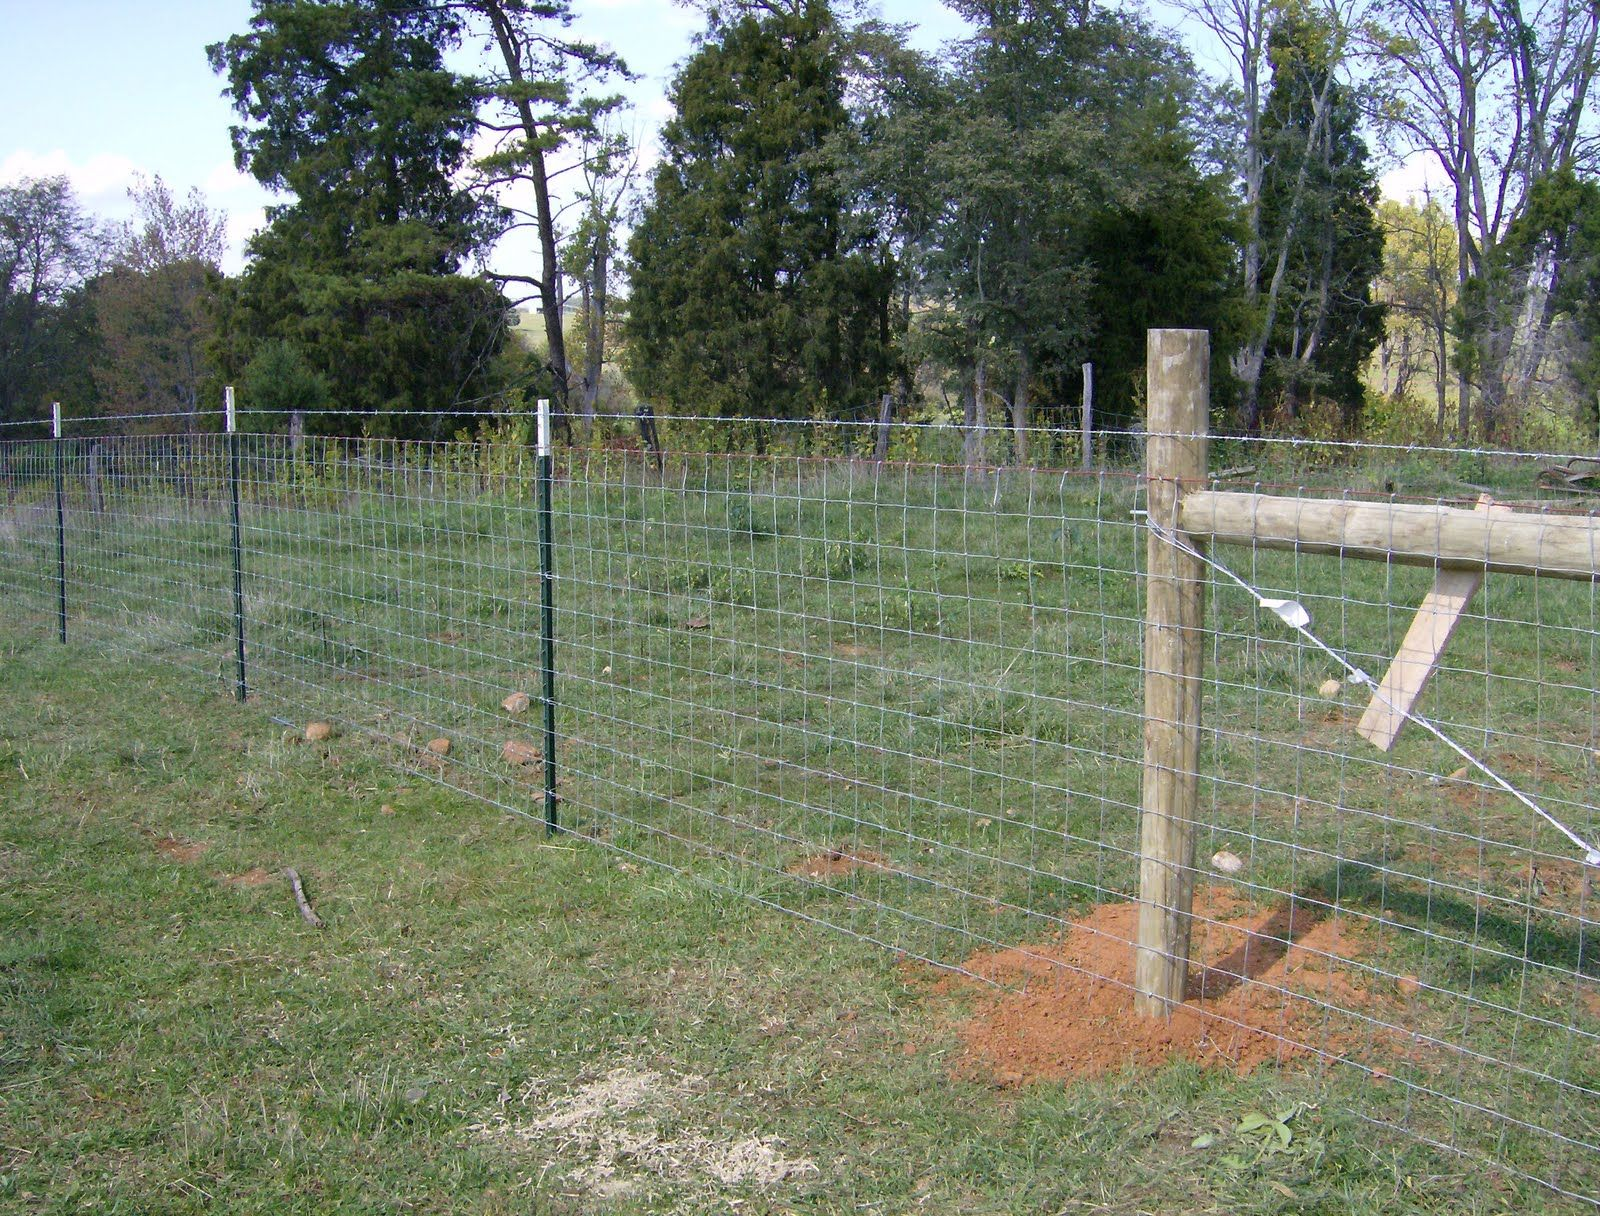 marvelous field fence post spacing Part - 5: marvelous field fence post spacing home design ideas